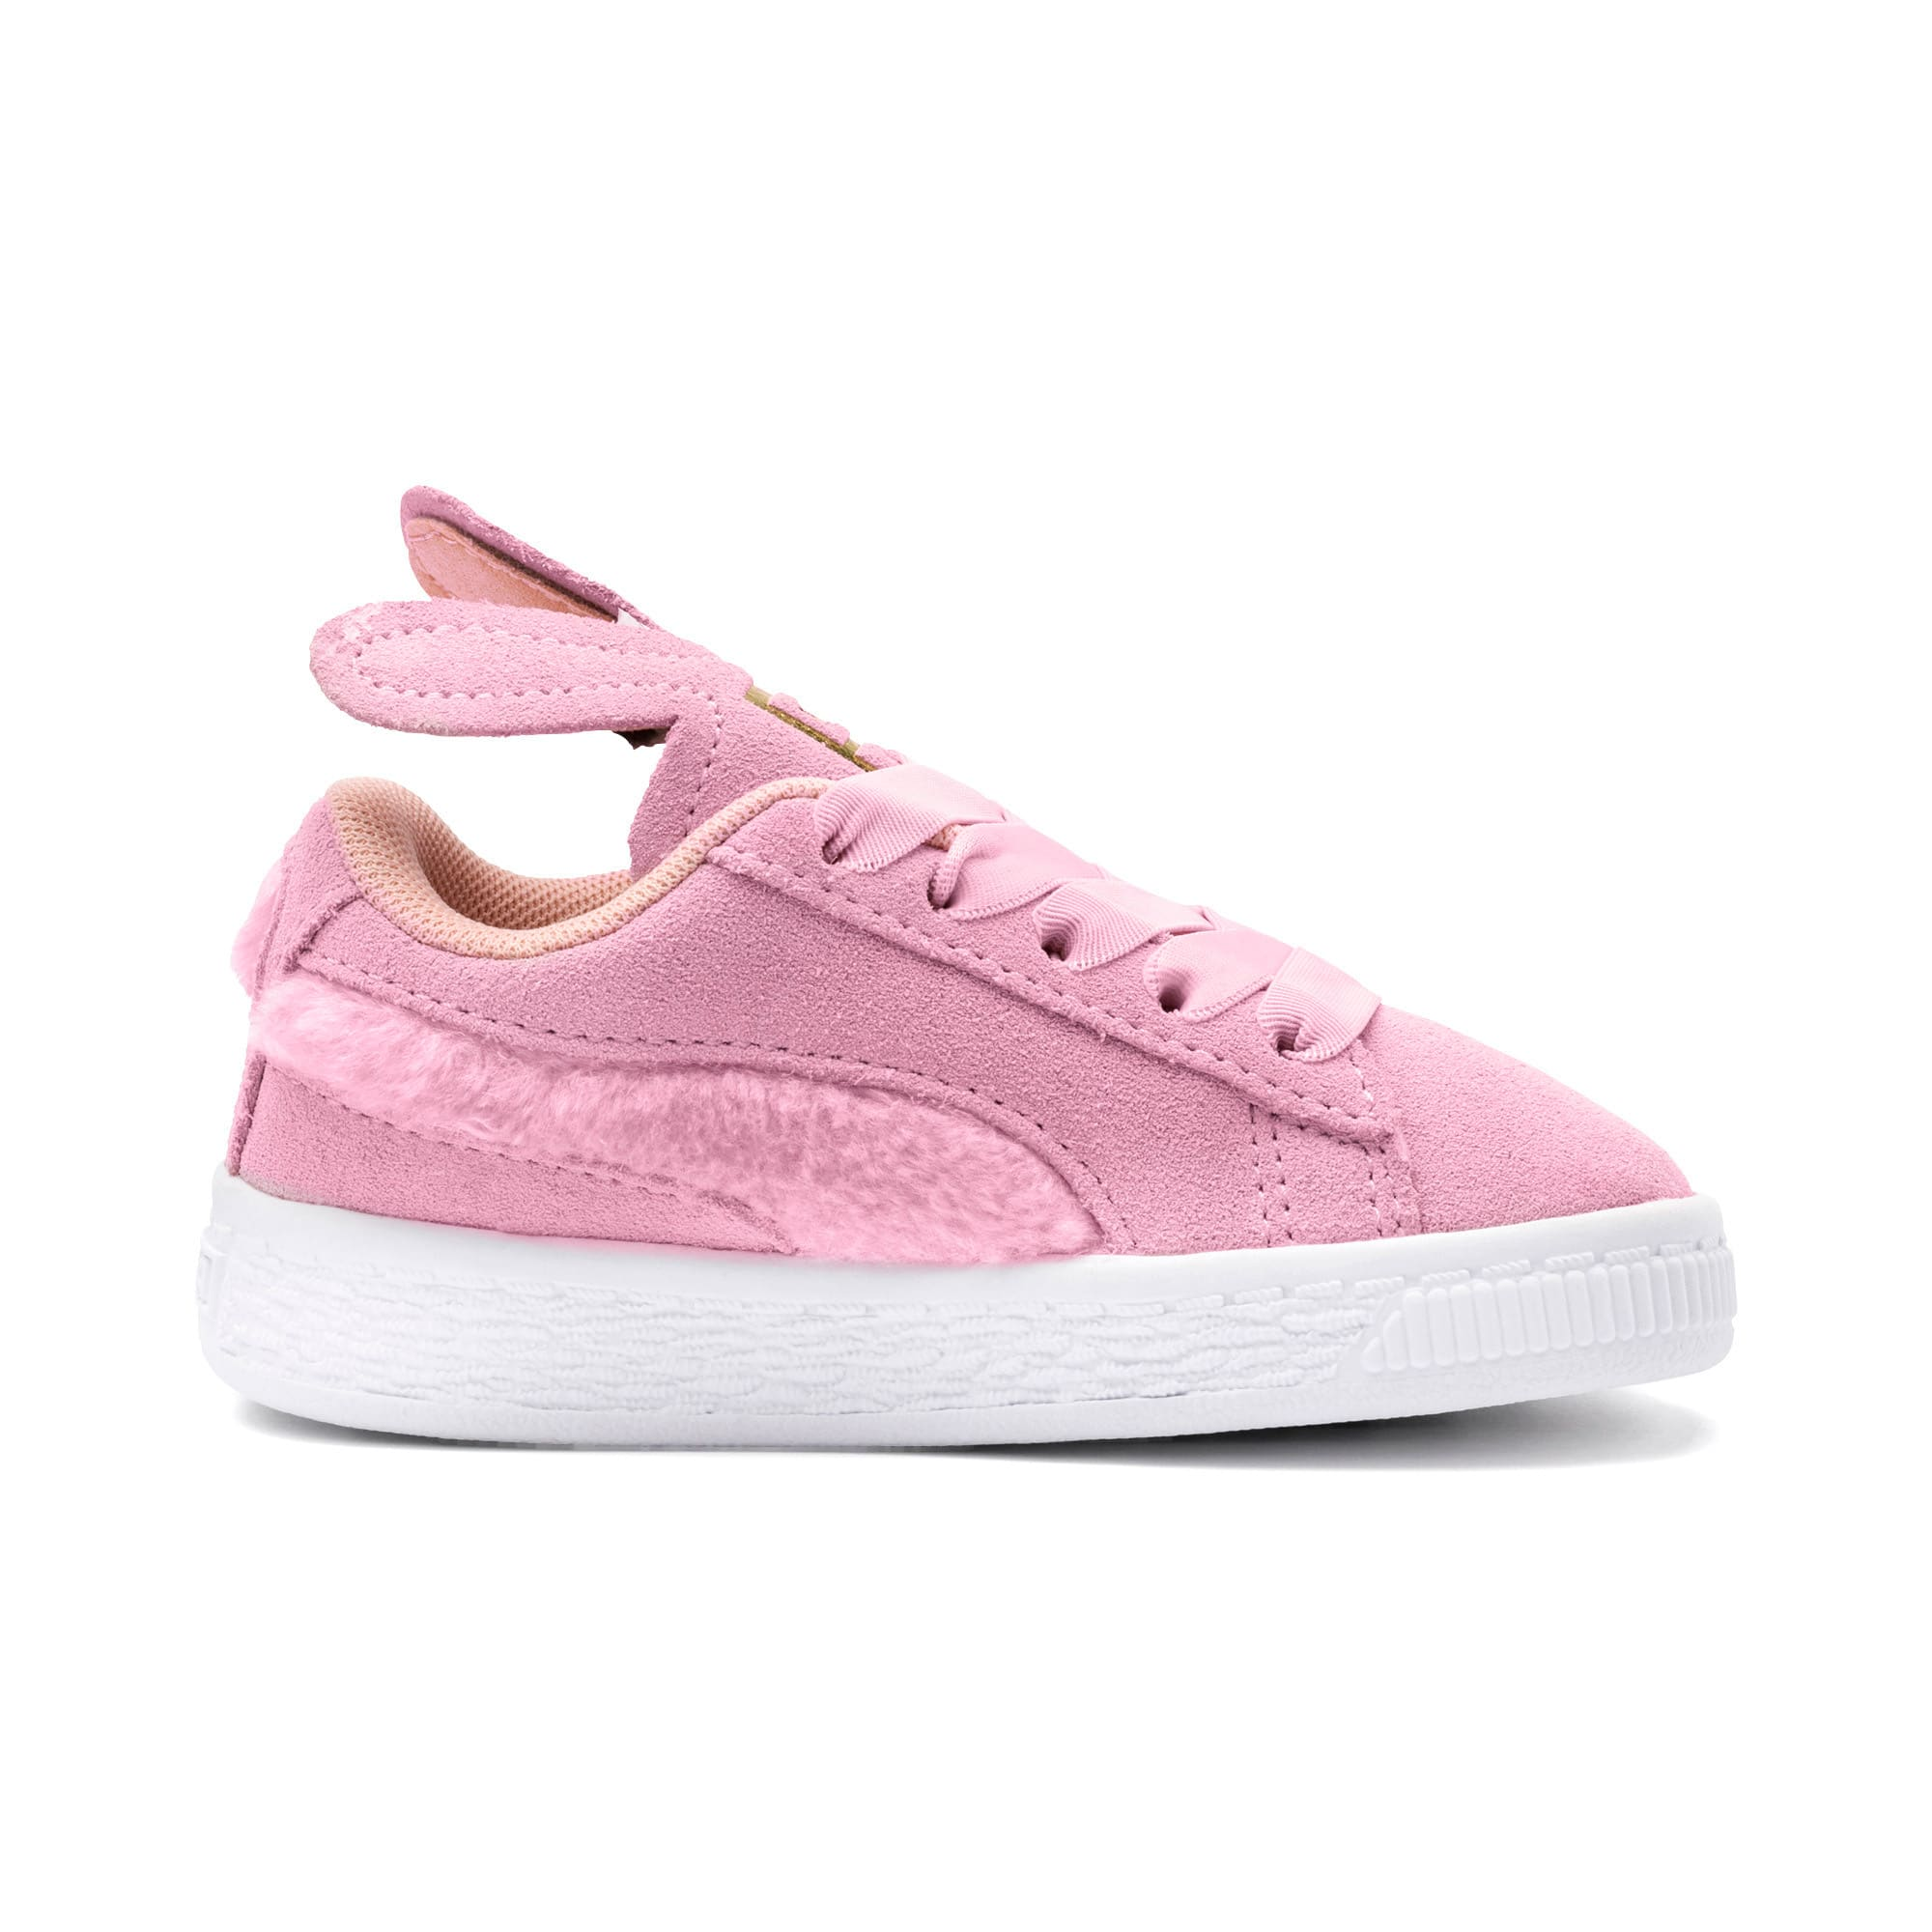 Thumbnail 5 of Suede Easter Alternate Closure Baby Sneaker, Pale Pink-Coral Cloud, medium